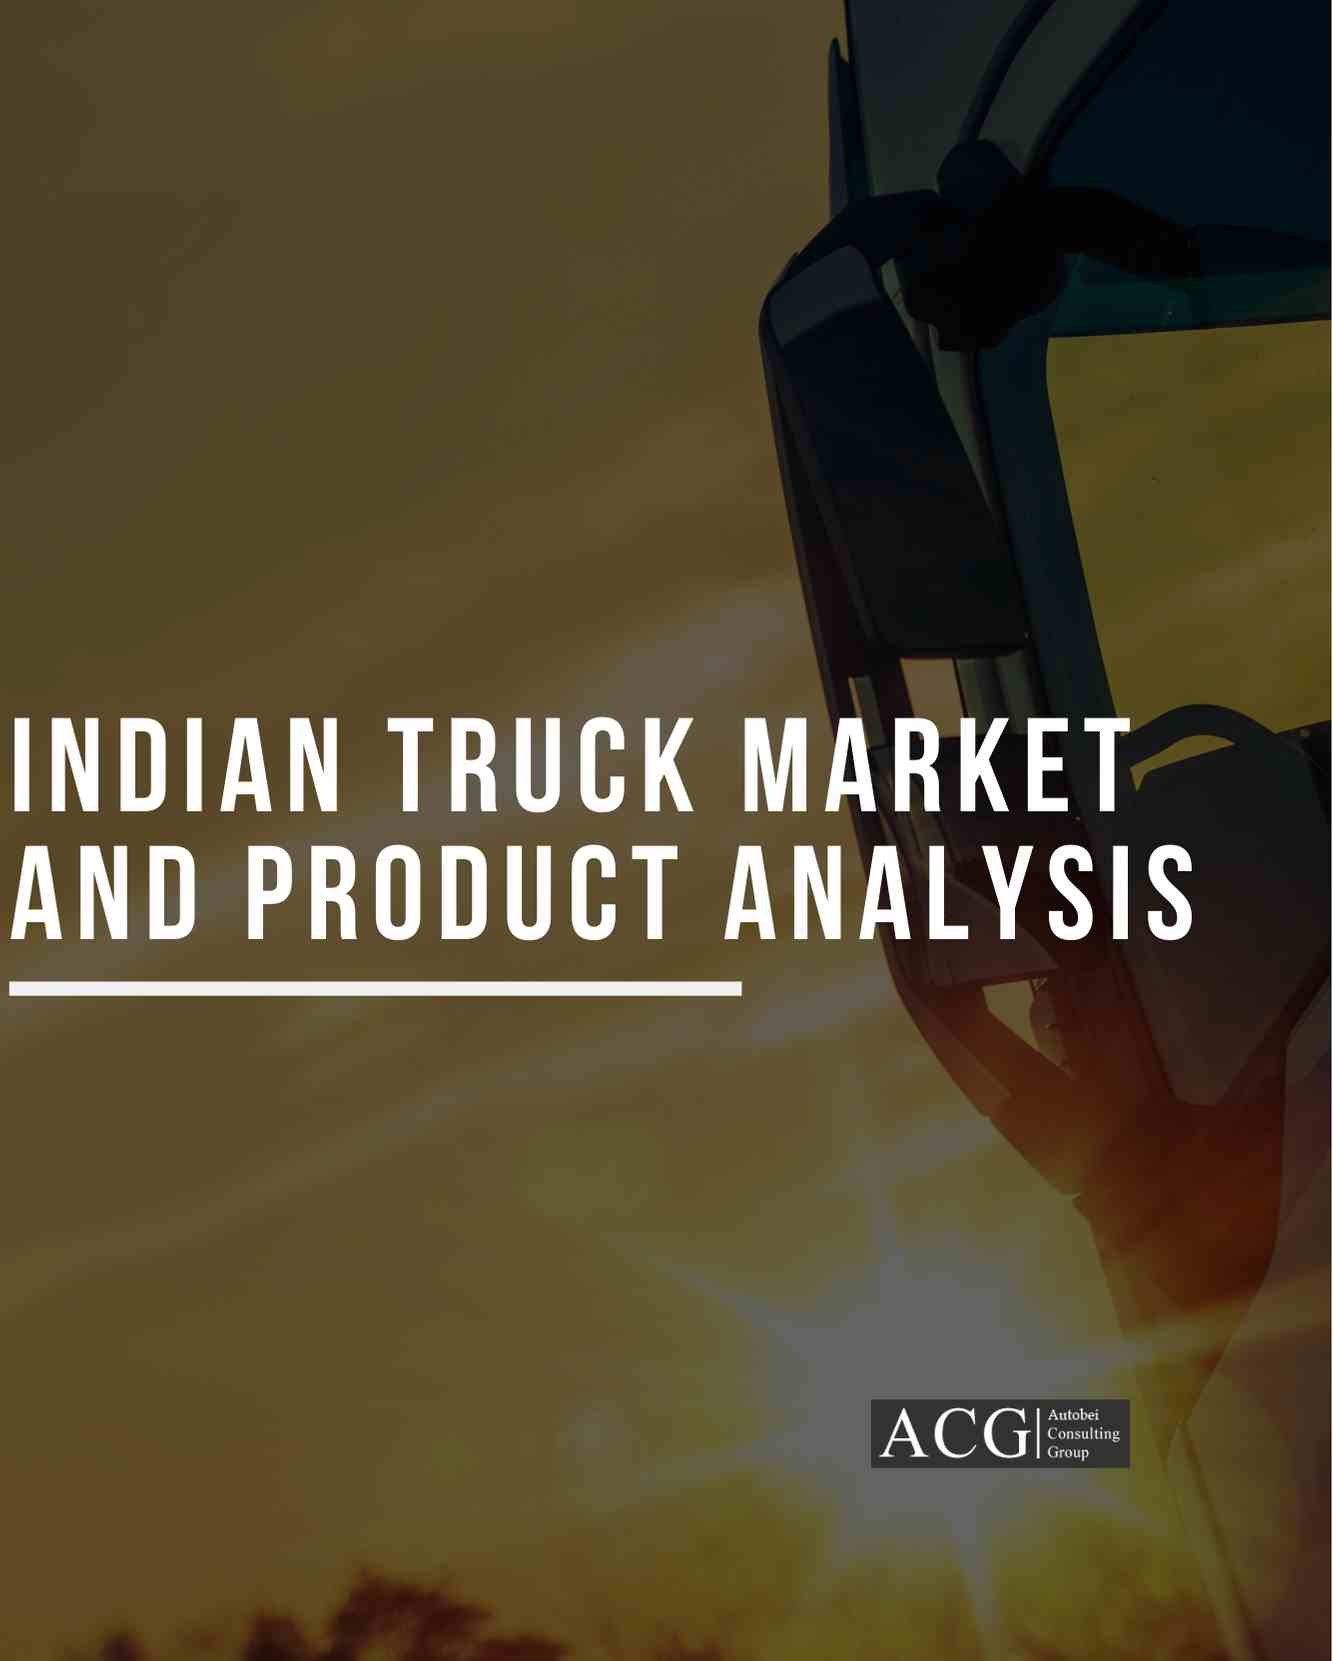 Indian Truck Market and Product Analysis